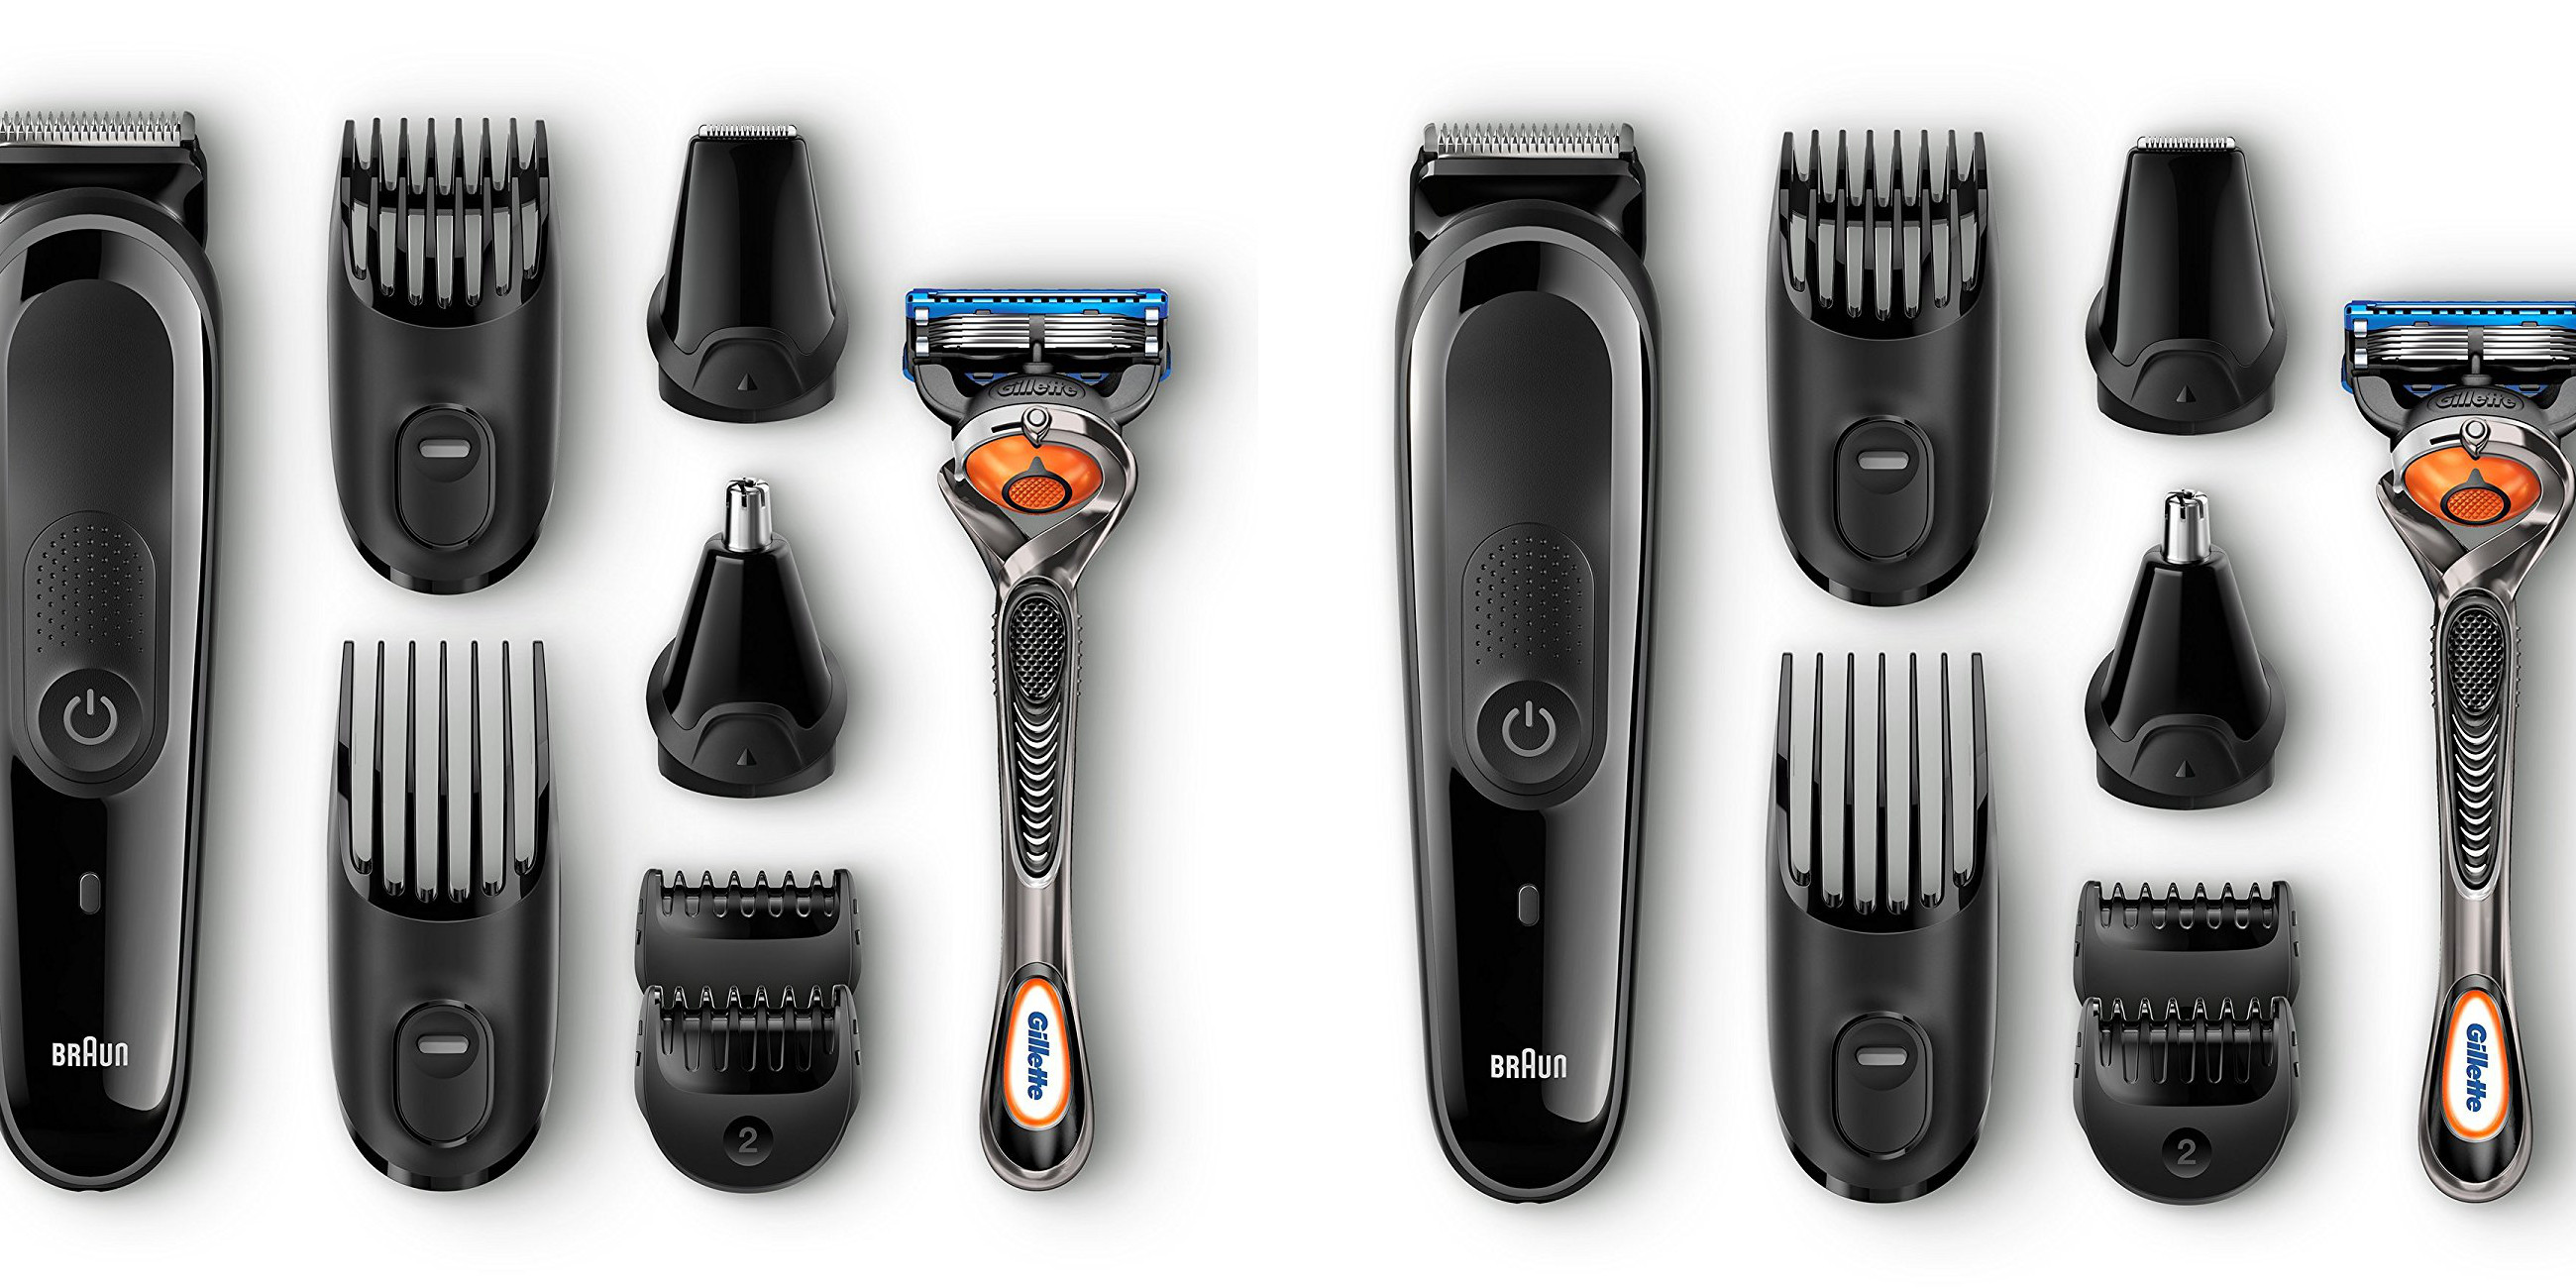 Braun Men's Beard/Hair Trimmer Grooming Kit drops to $15 Prime shipped today